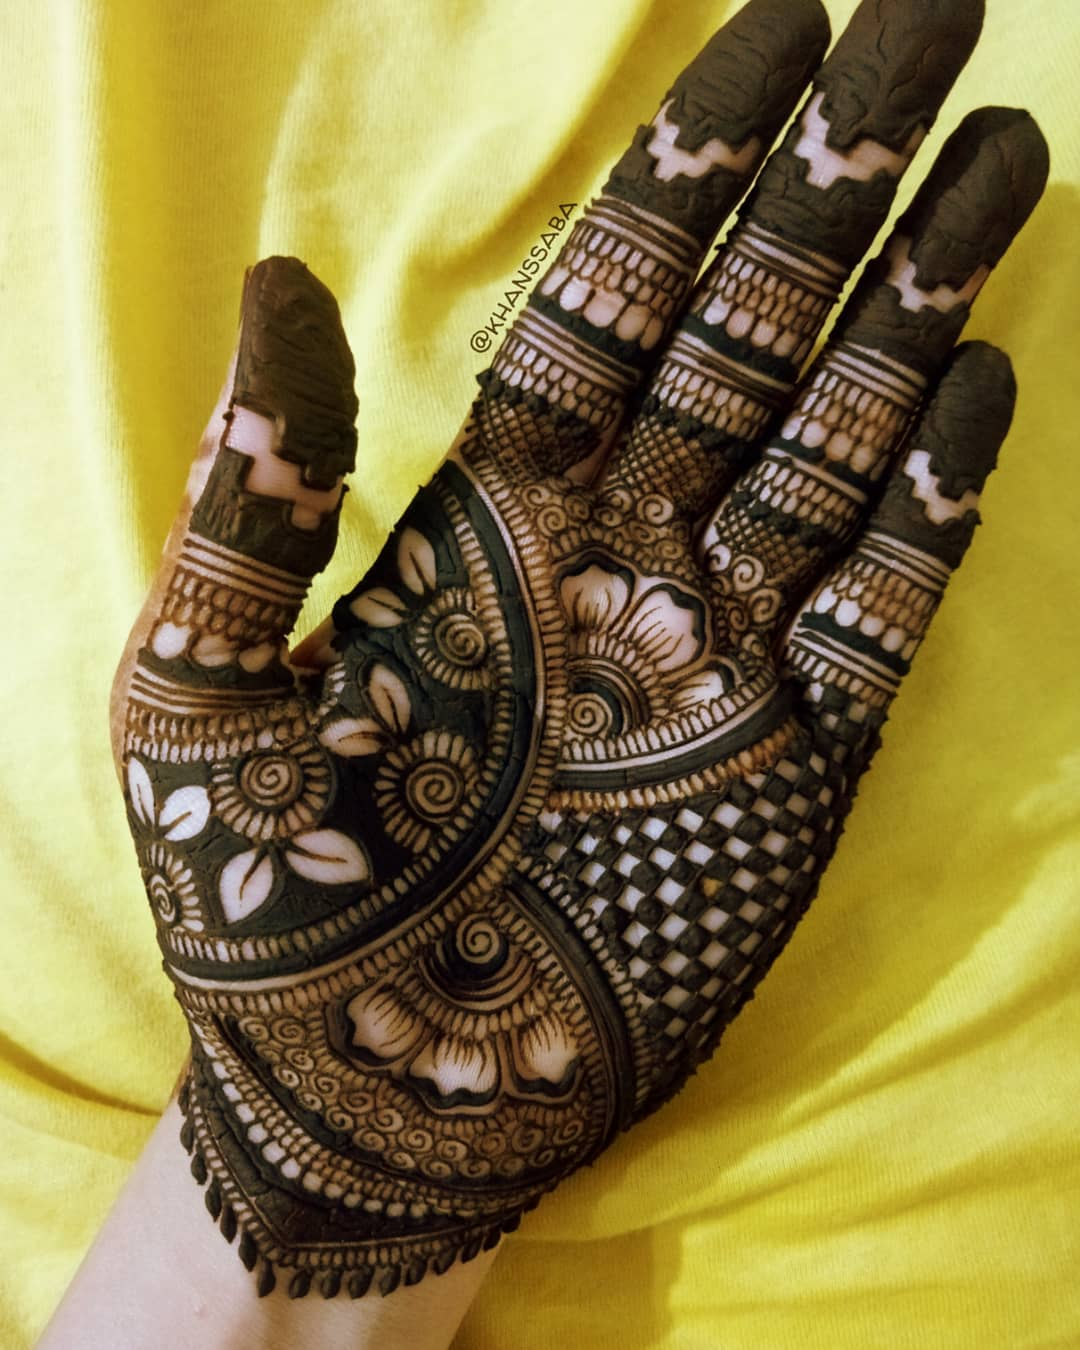 Floral and checked palm mehndi designs for full hand